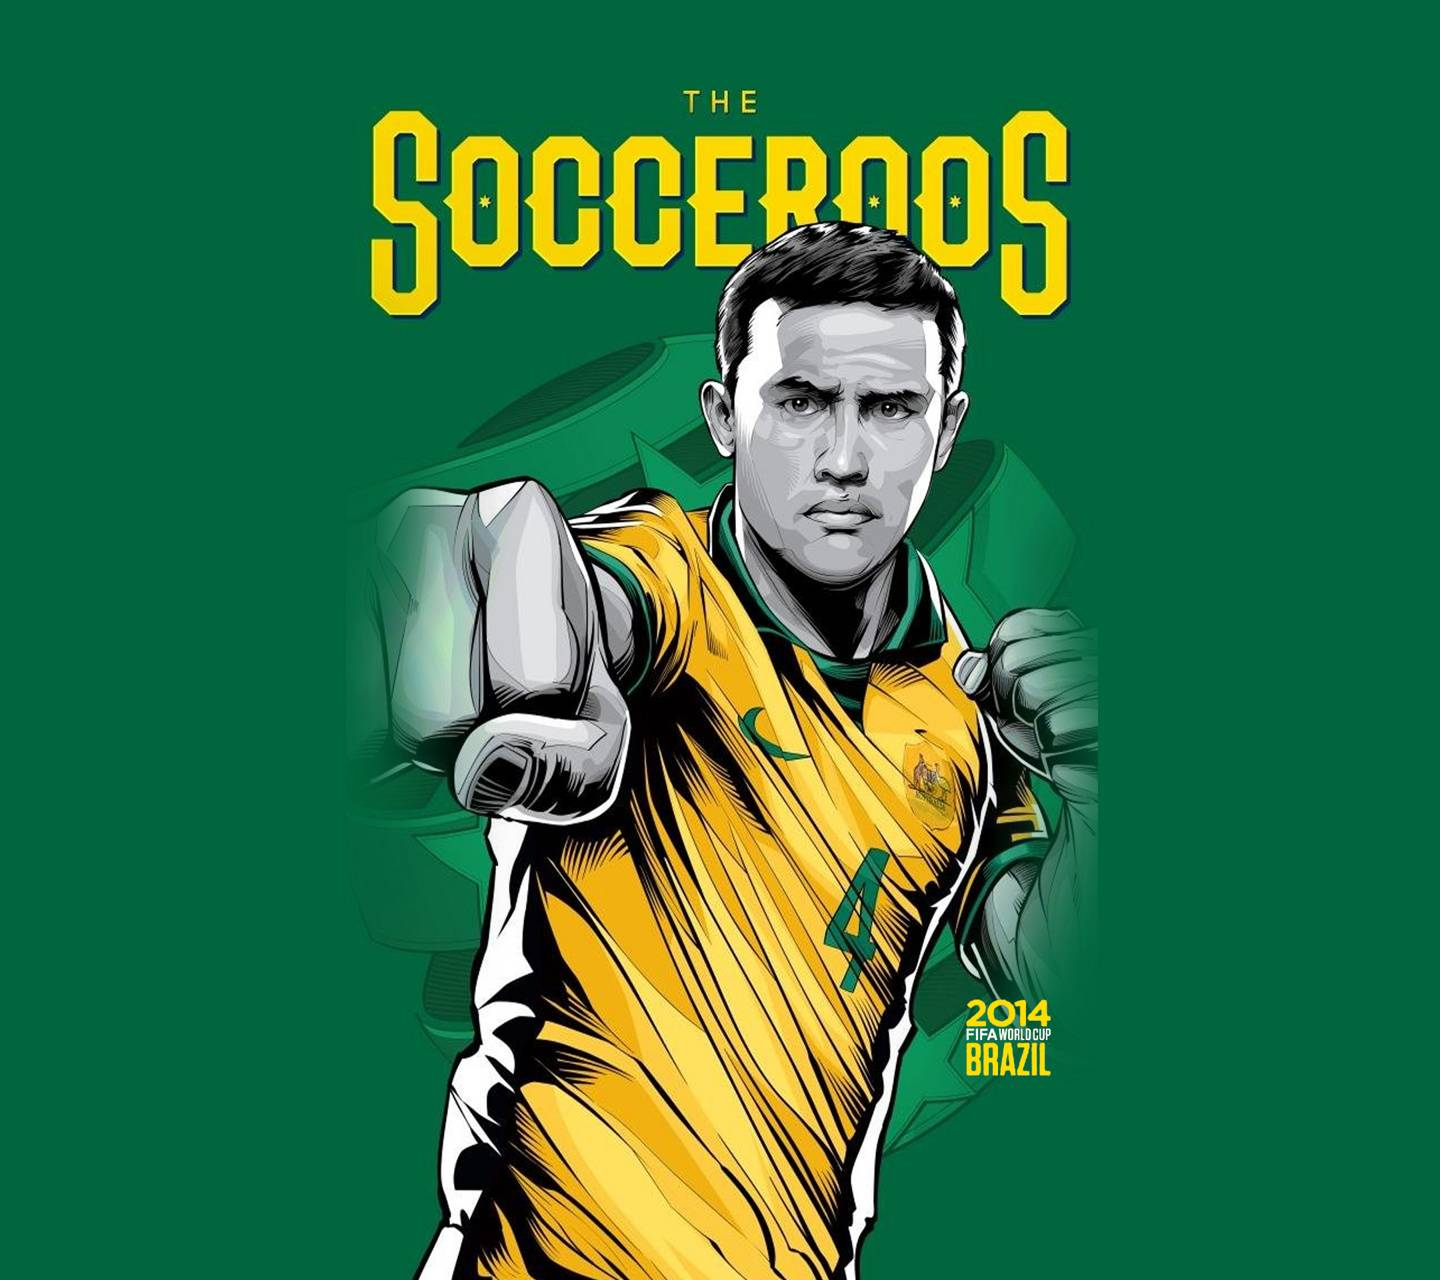 THE SOCCEROOS